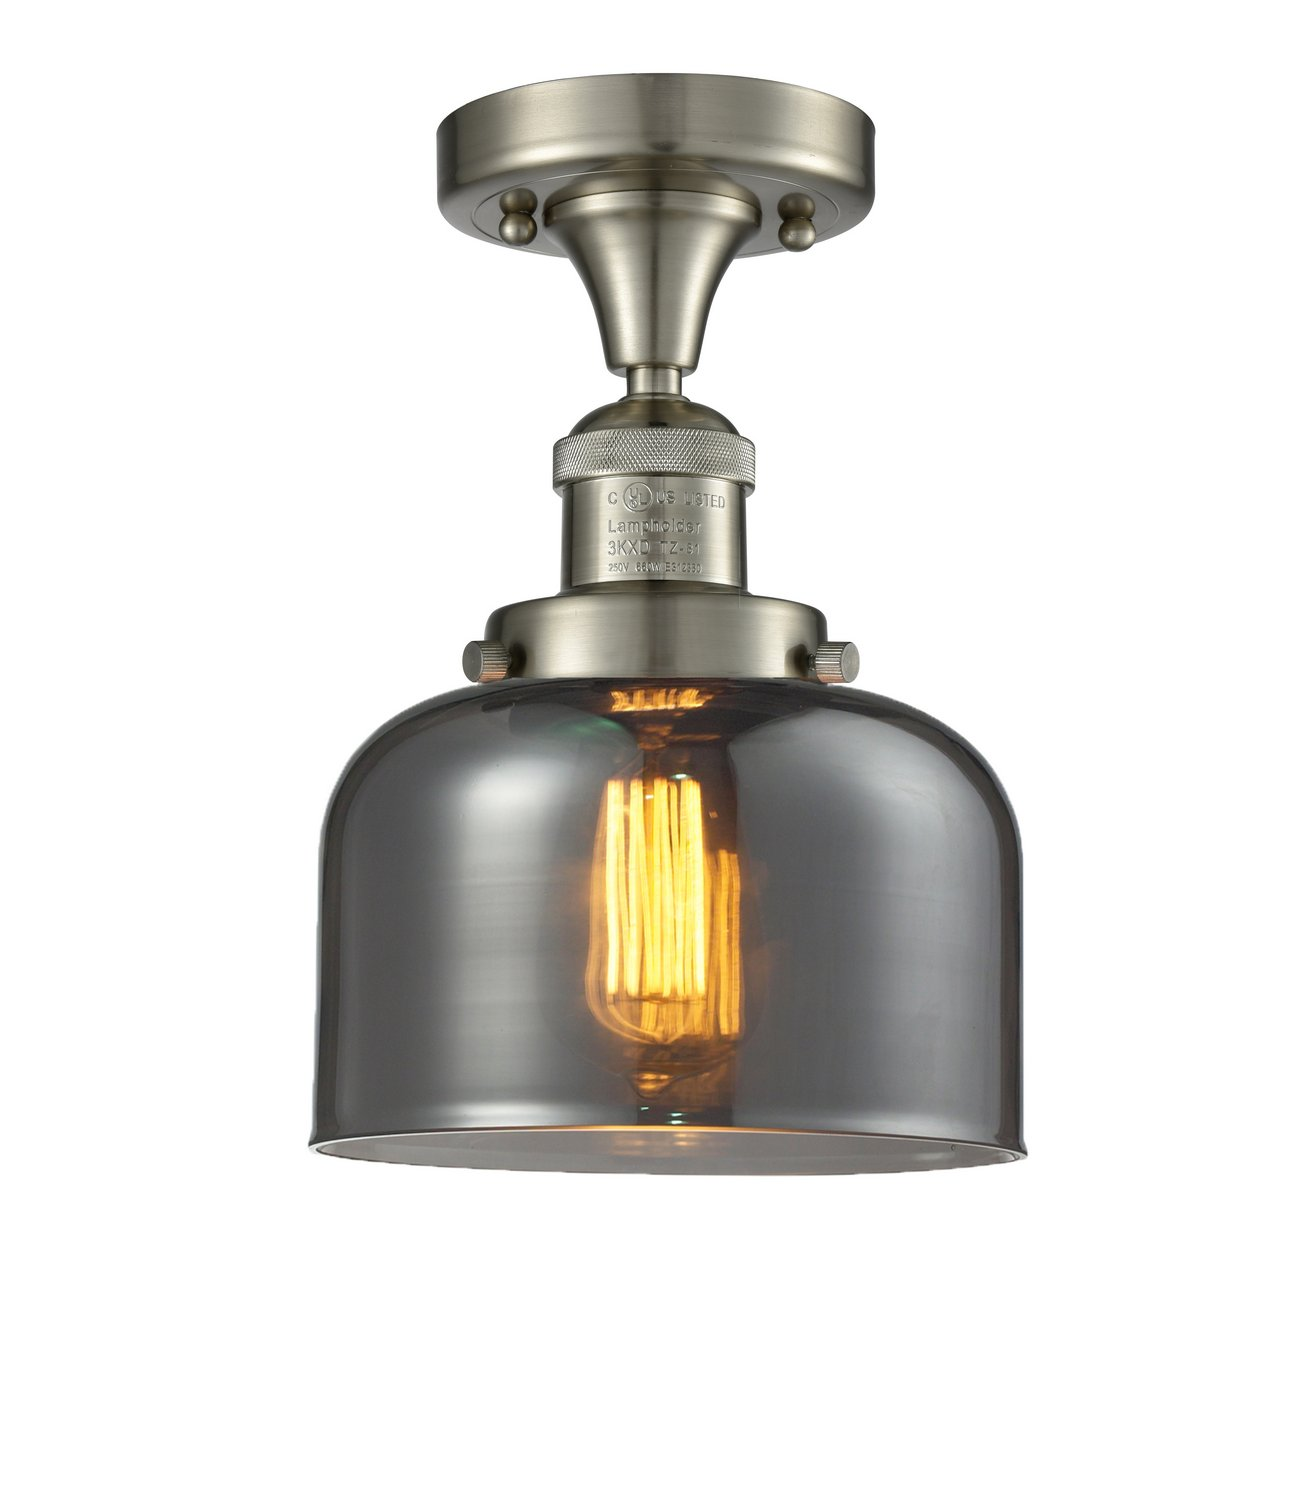 Progress Lighting P3855-09 2-Light Semi-Flush with Modern Trumpet Glass Shades in A Soft Etched Finish Brushed Nickel